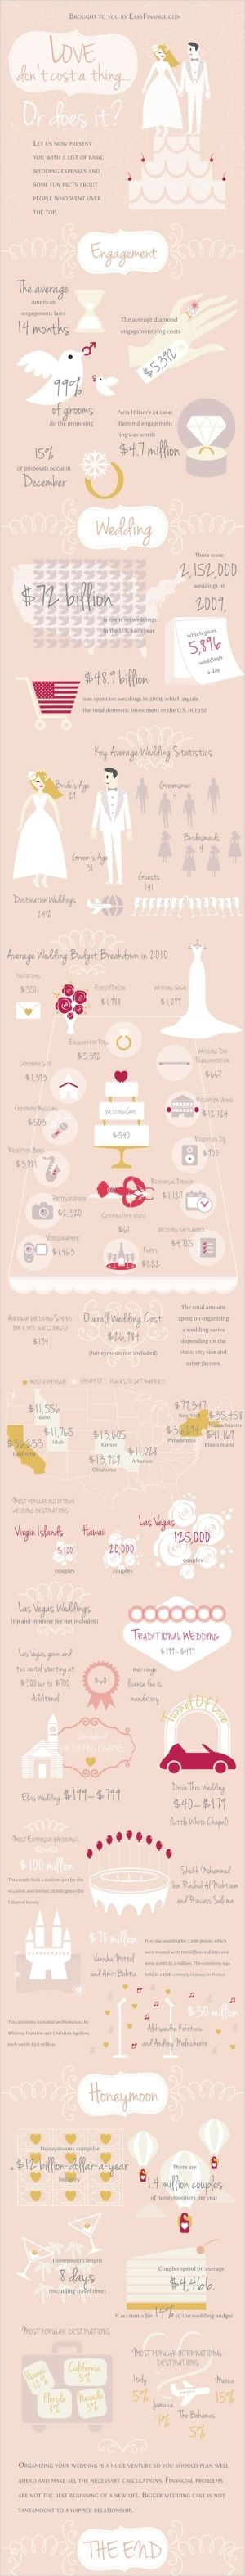 wedding budget planning by TinyCarmen